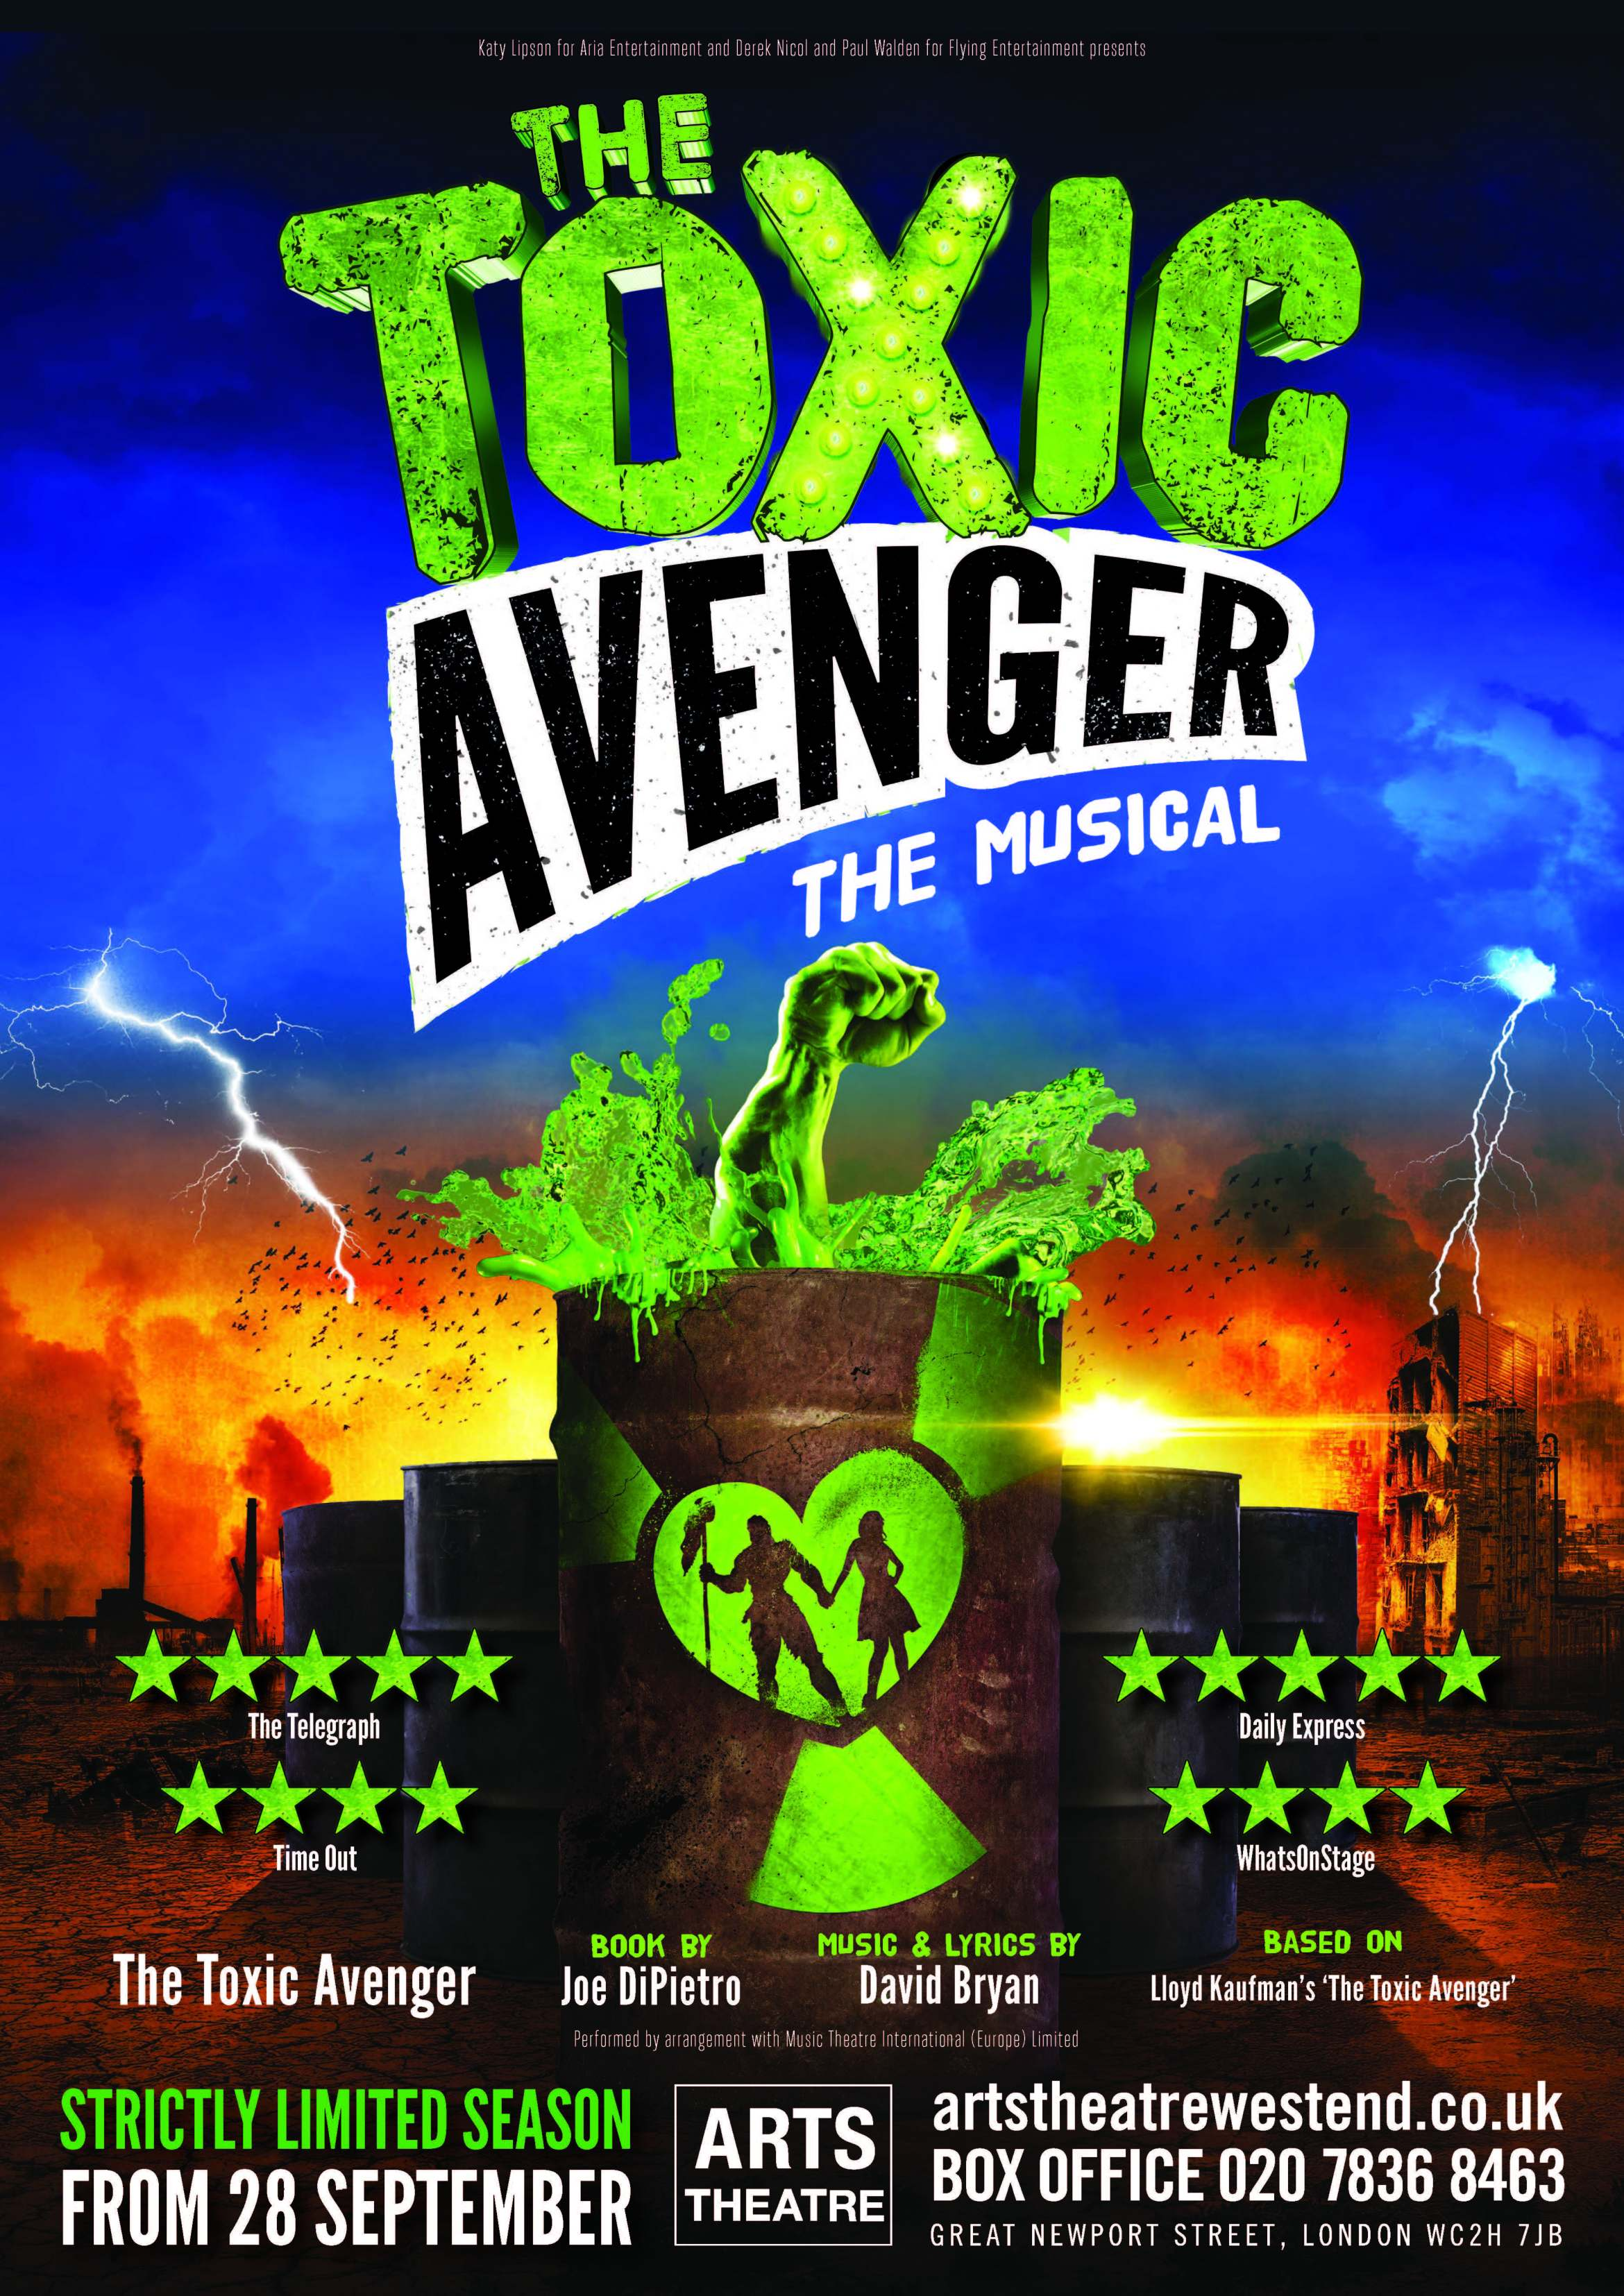 NEWS: The Toxic Avenger to Return to London – Love London Love Culture